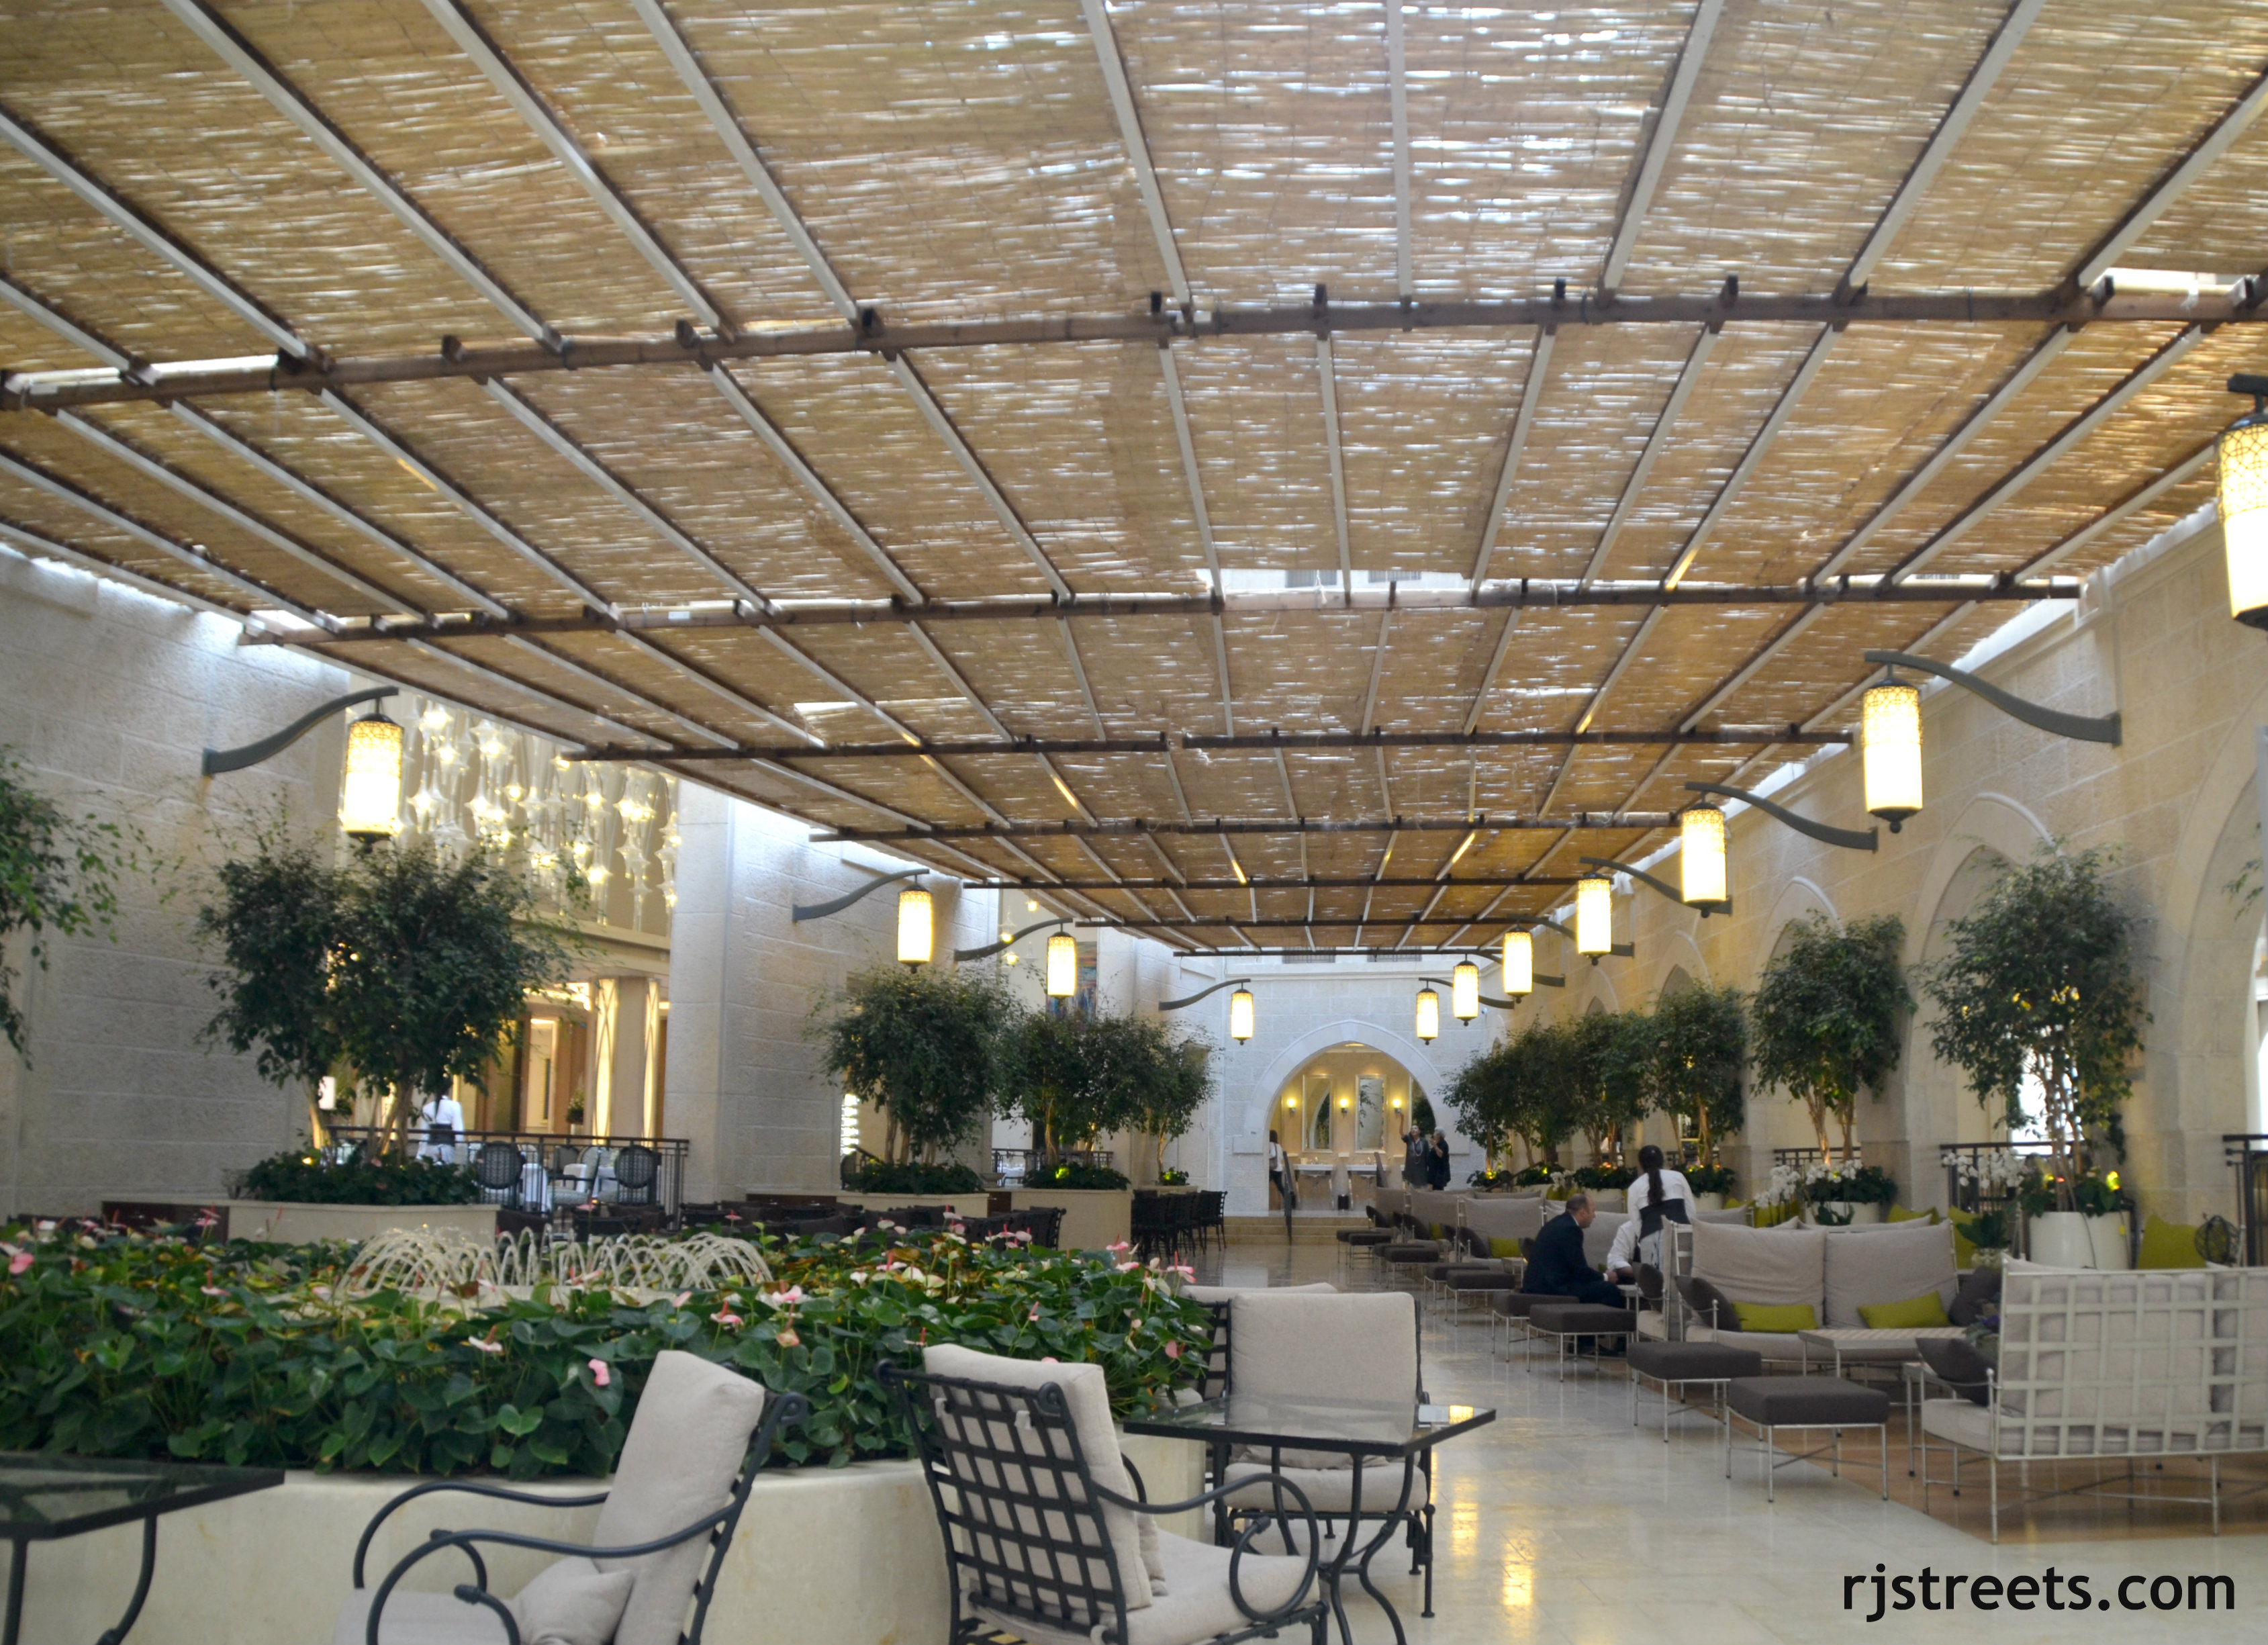 image sukka in atrium of Waldorf Astoria